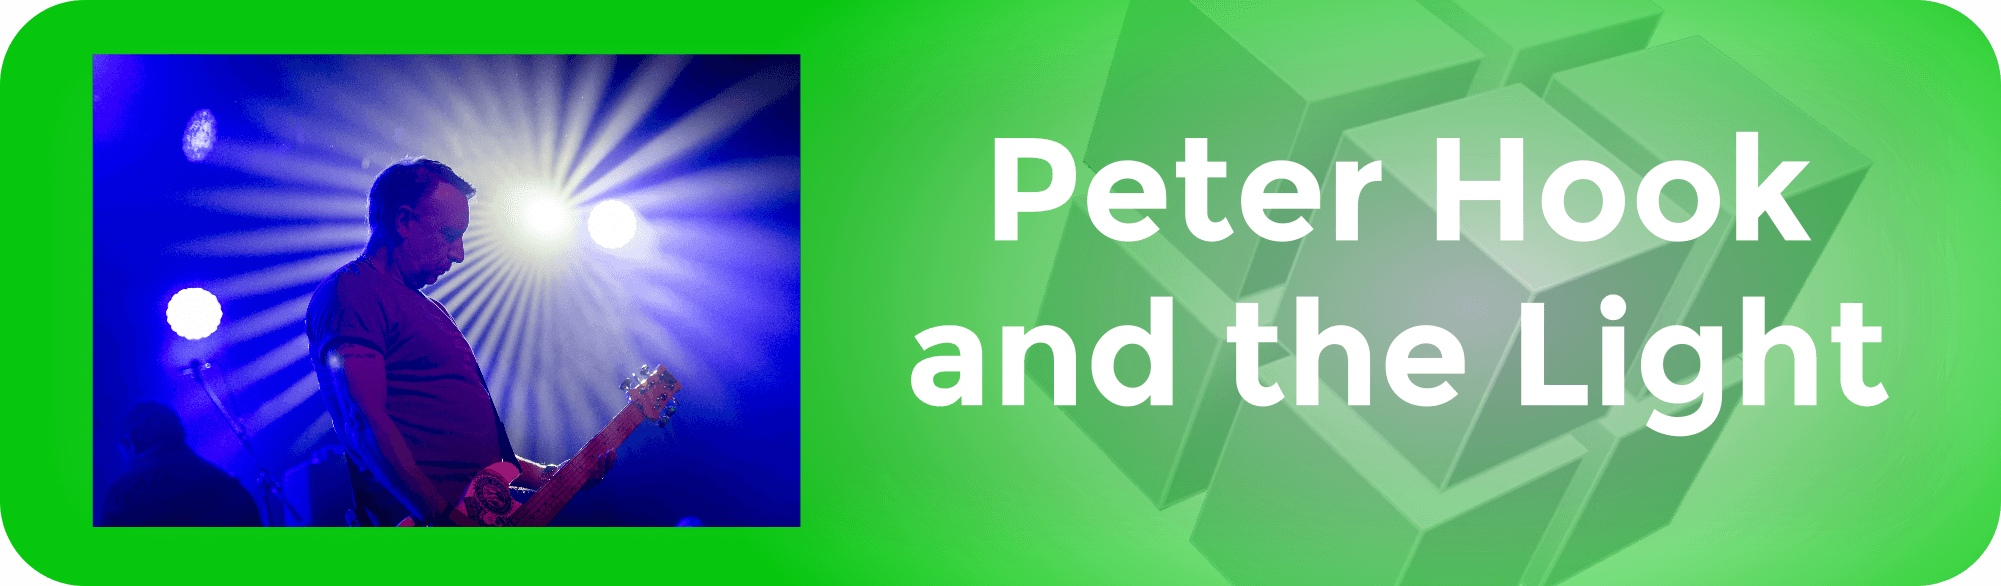 Peter Hook and the Light (1)